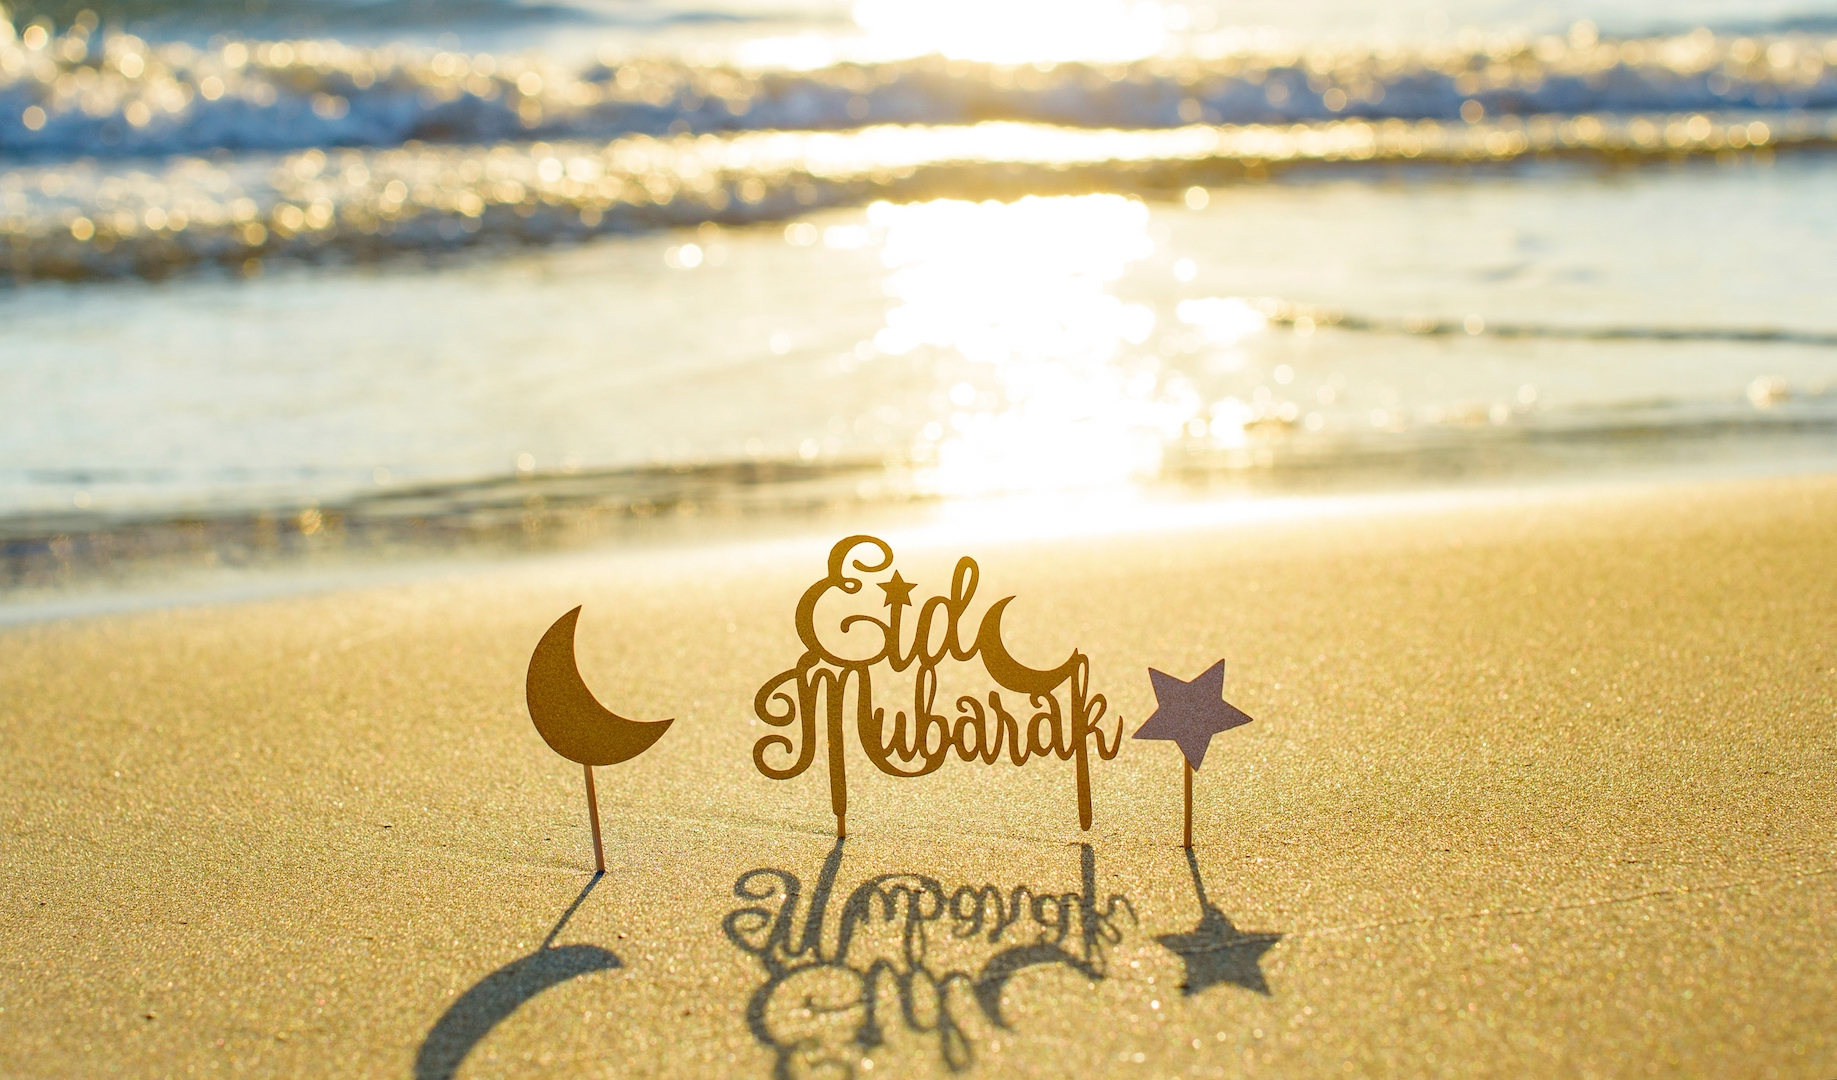 Eid holidays to commence in the UAE from 19 July